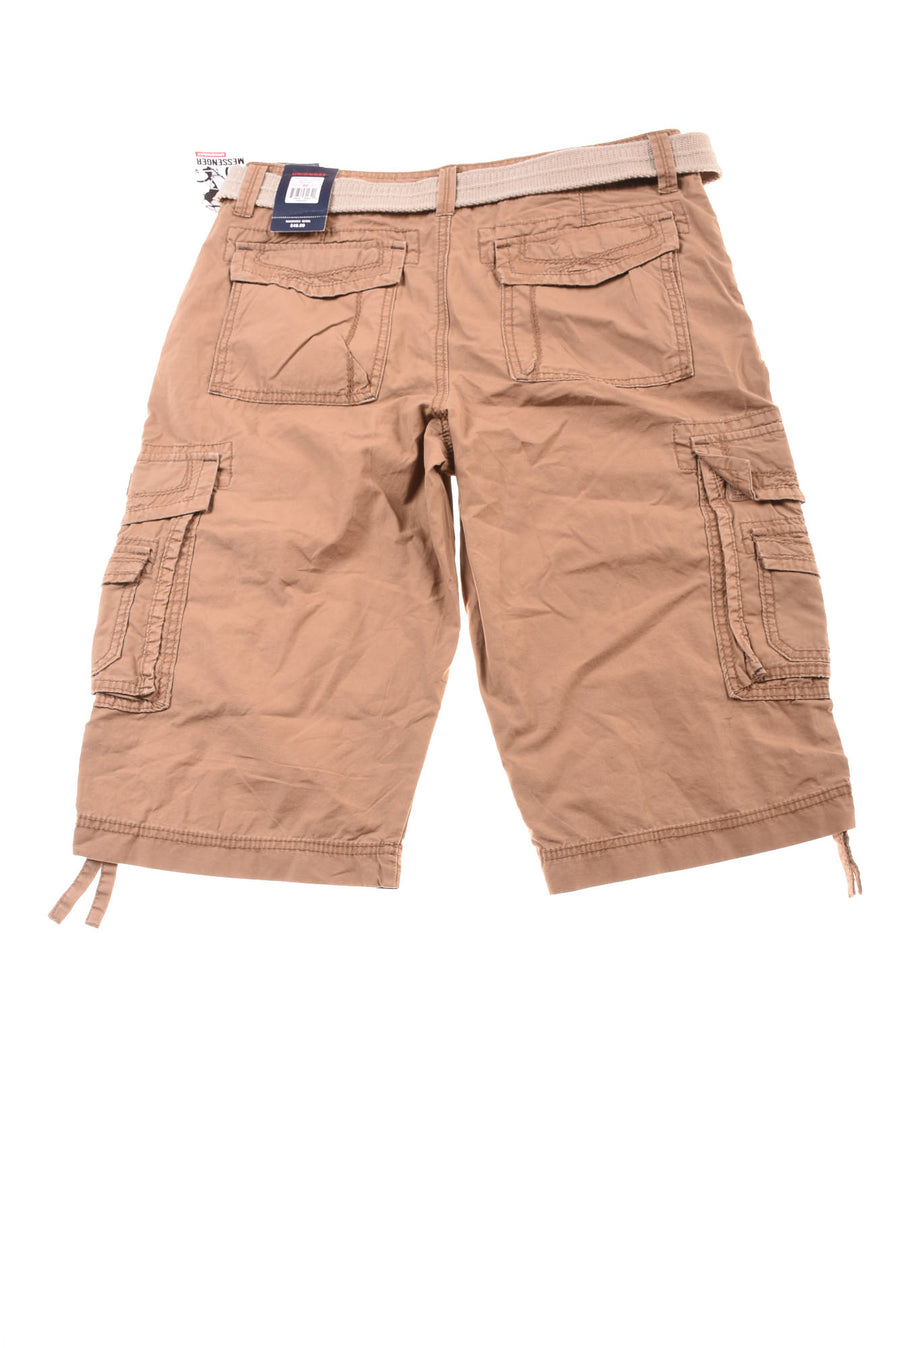 NEW Union Bay Men's Shorts 32 Brown